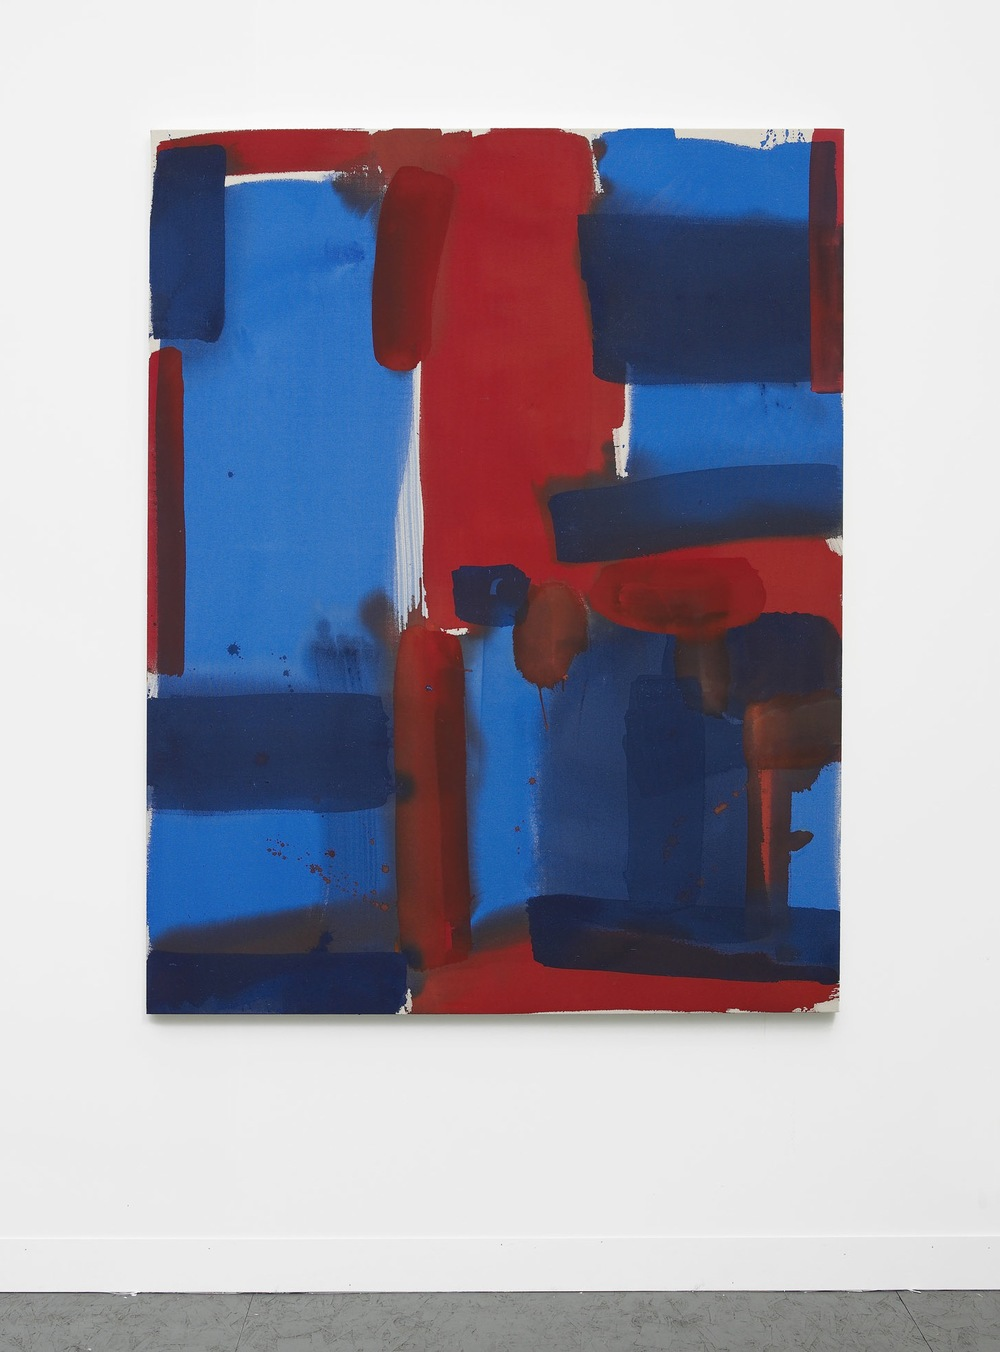 No Input (red, blue)  2013  Acrylic on canvas  162.5 x 127 cm / 64 x 50 in